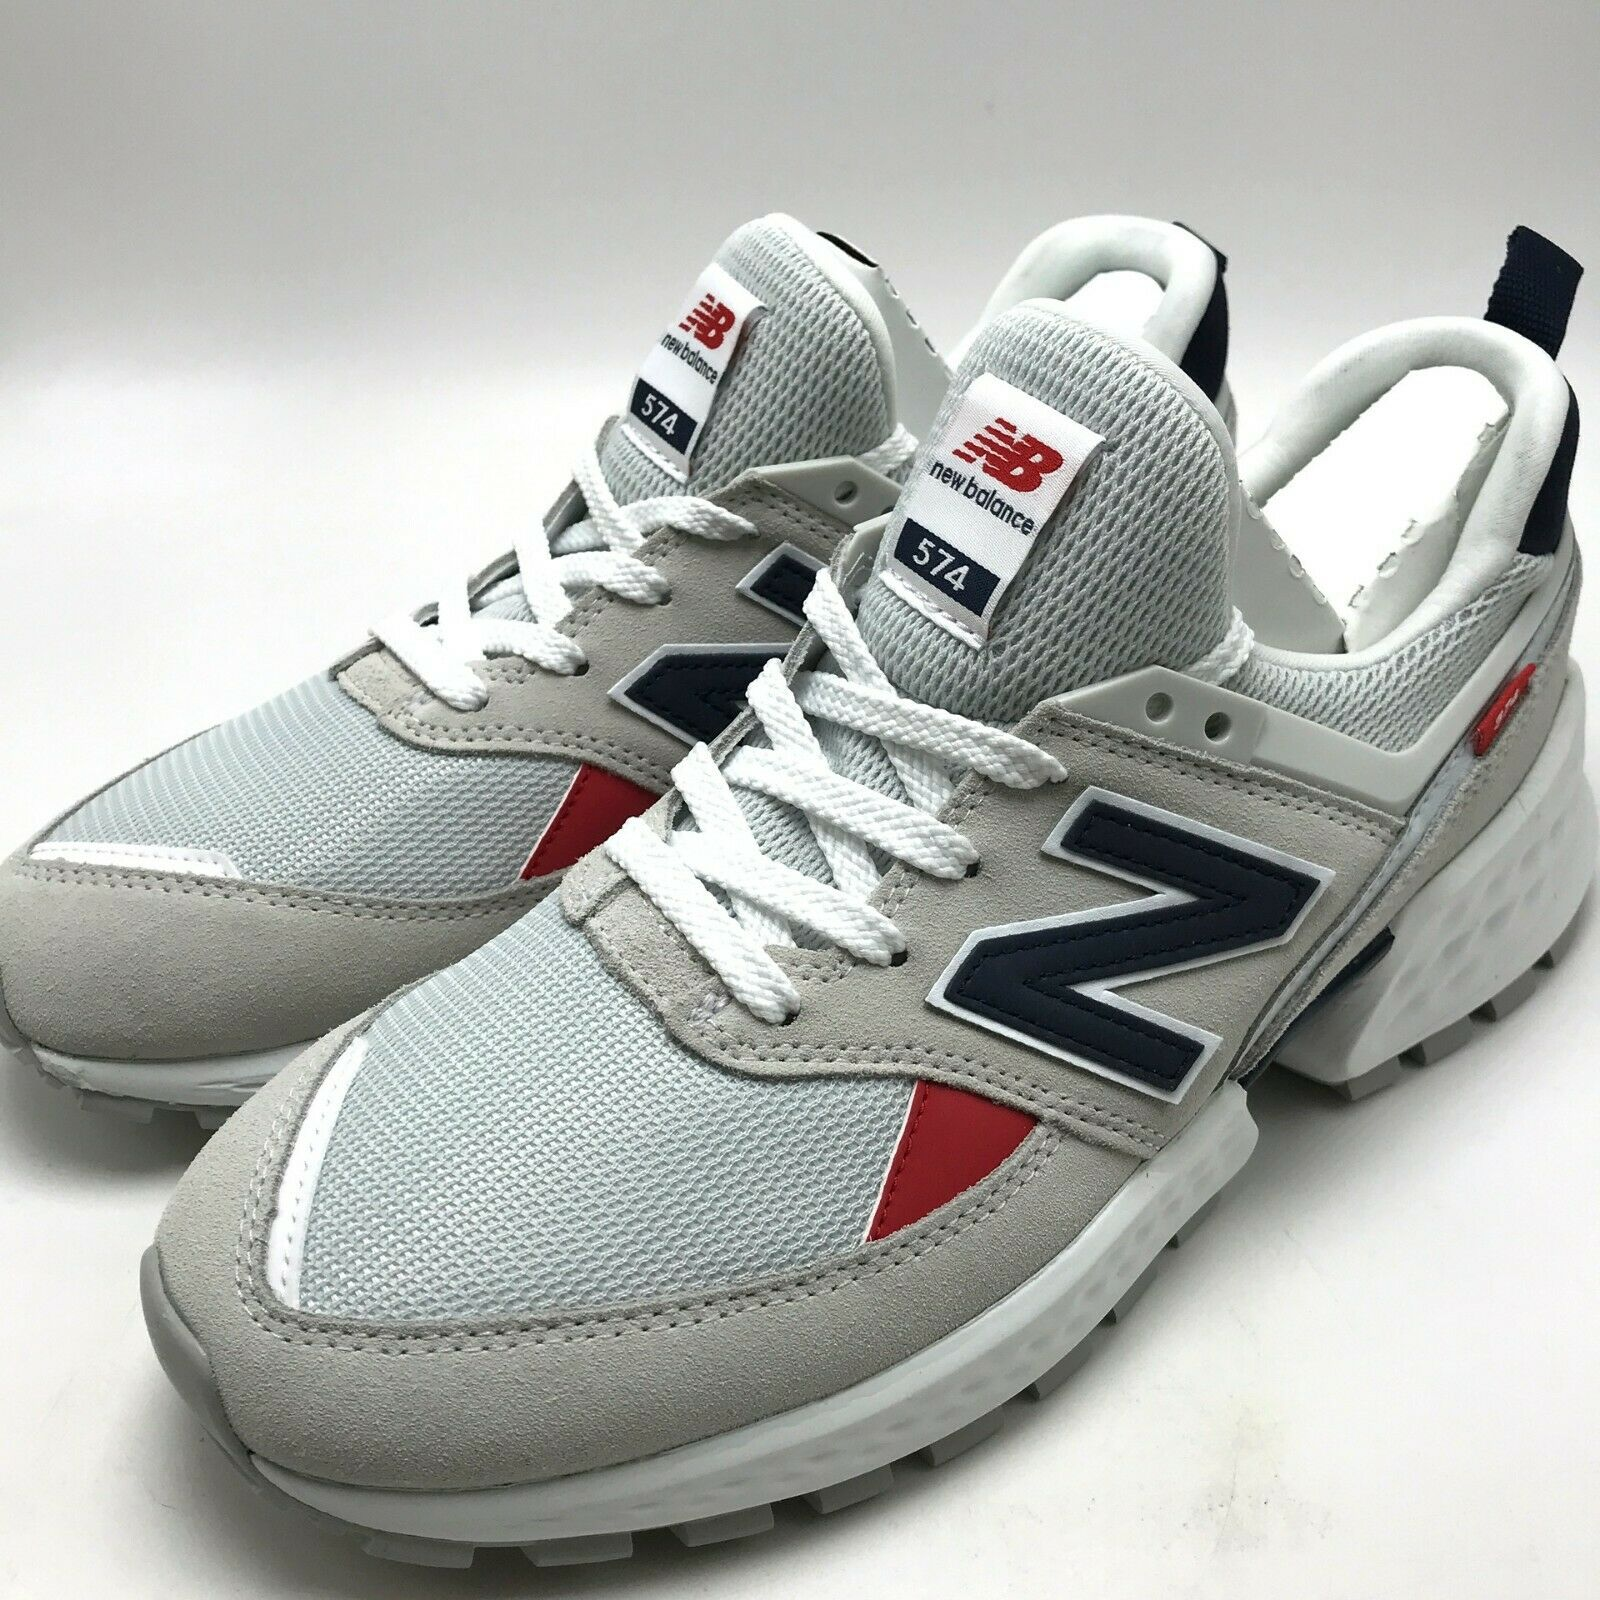 New Balance Lifestyle Men's Sport shoes White Navy Red  MS574GNC